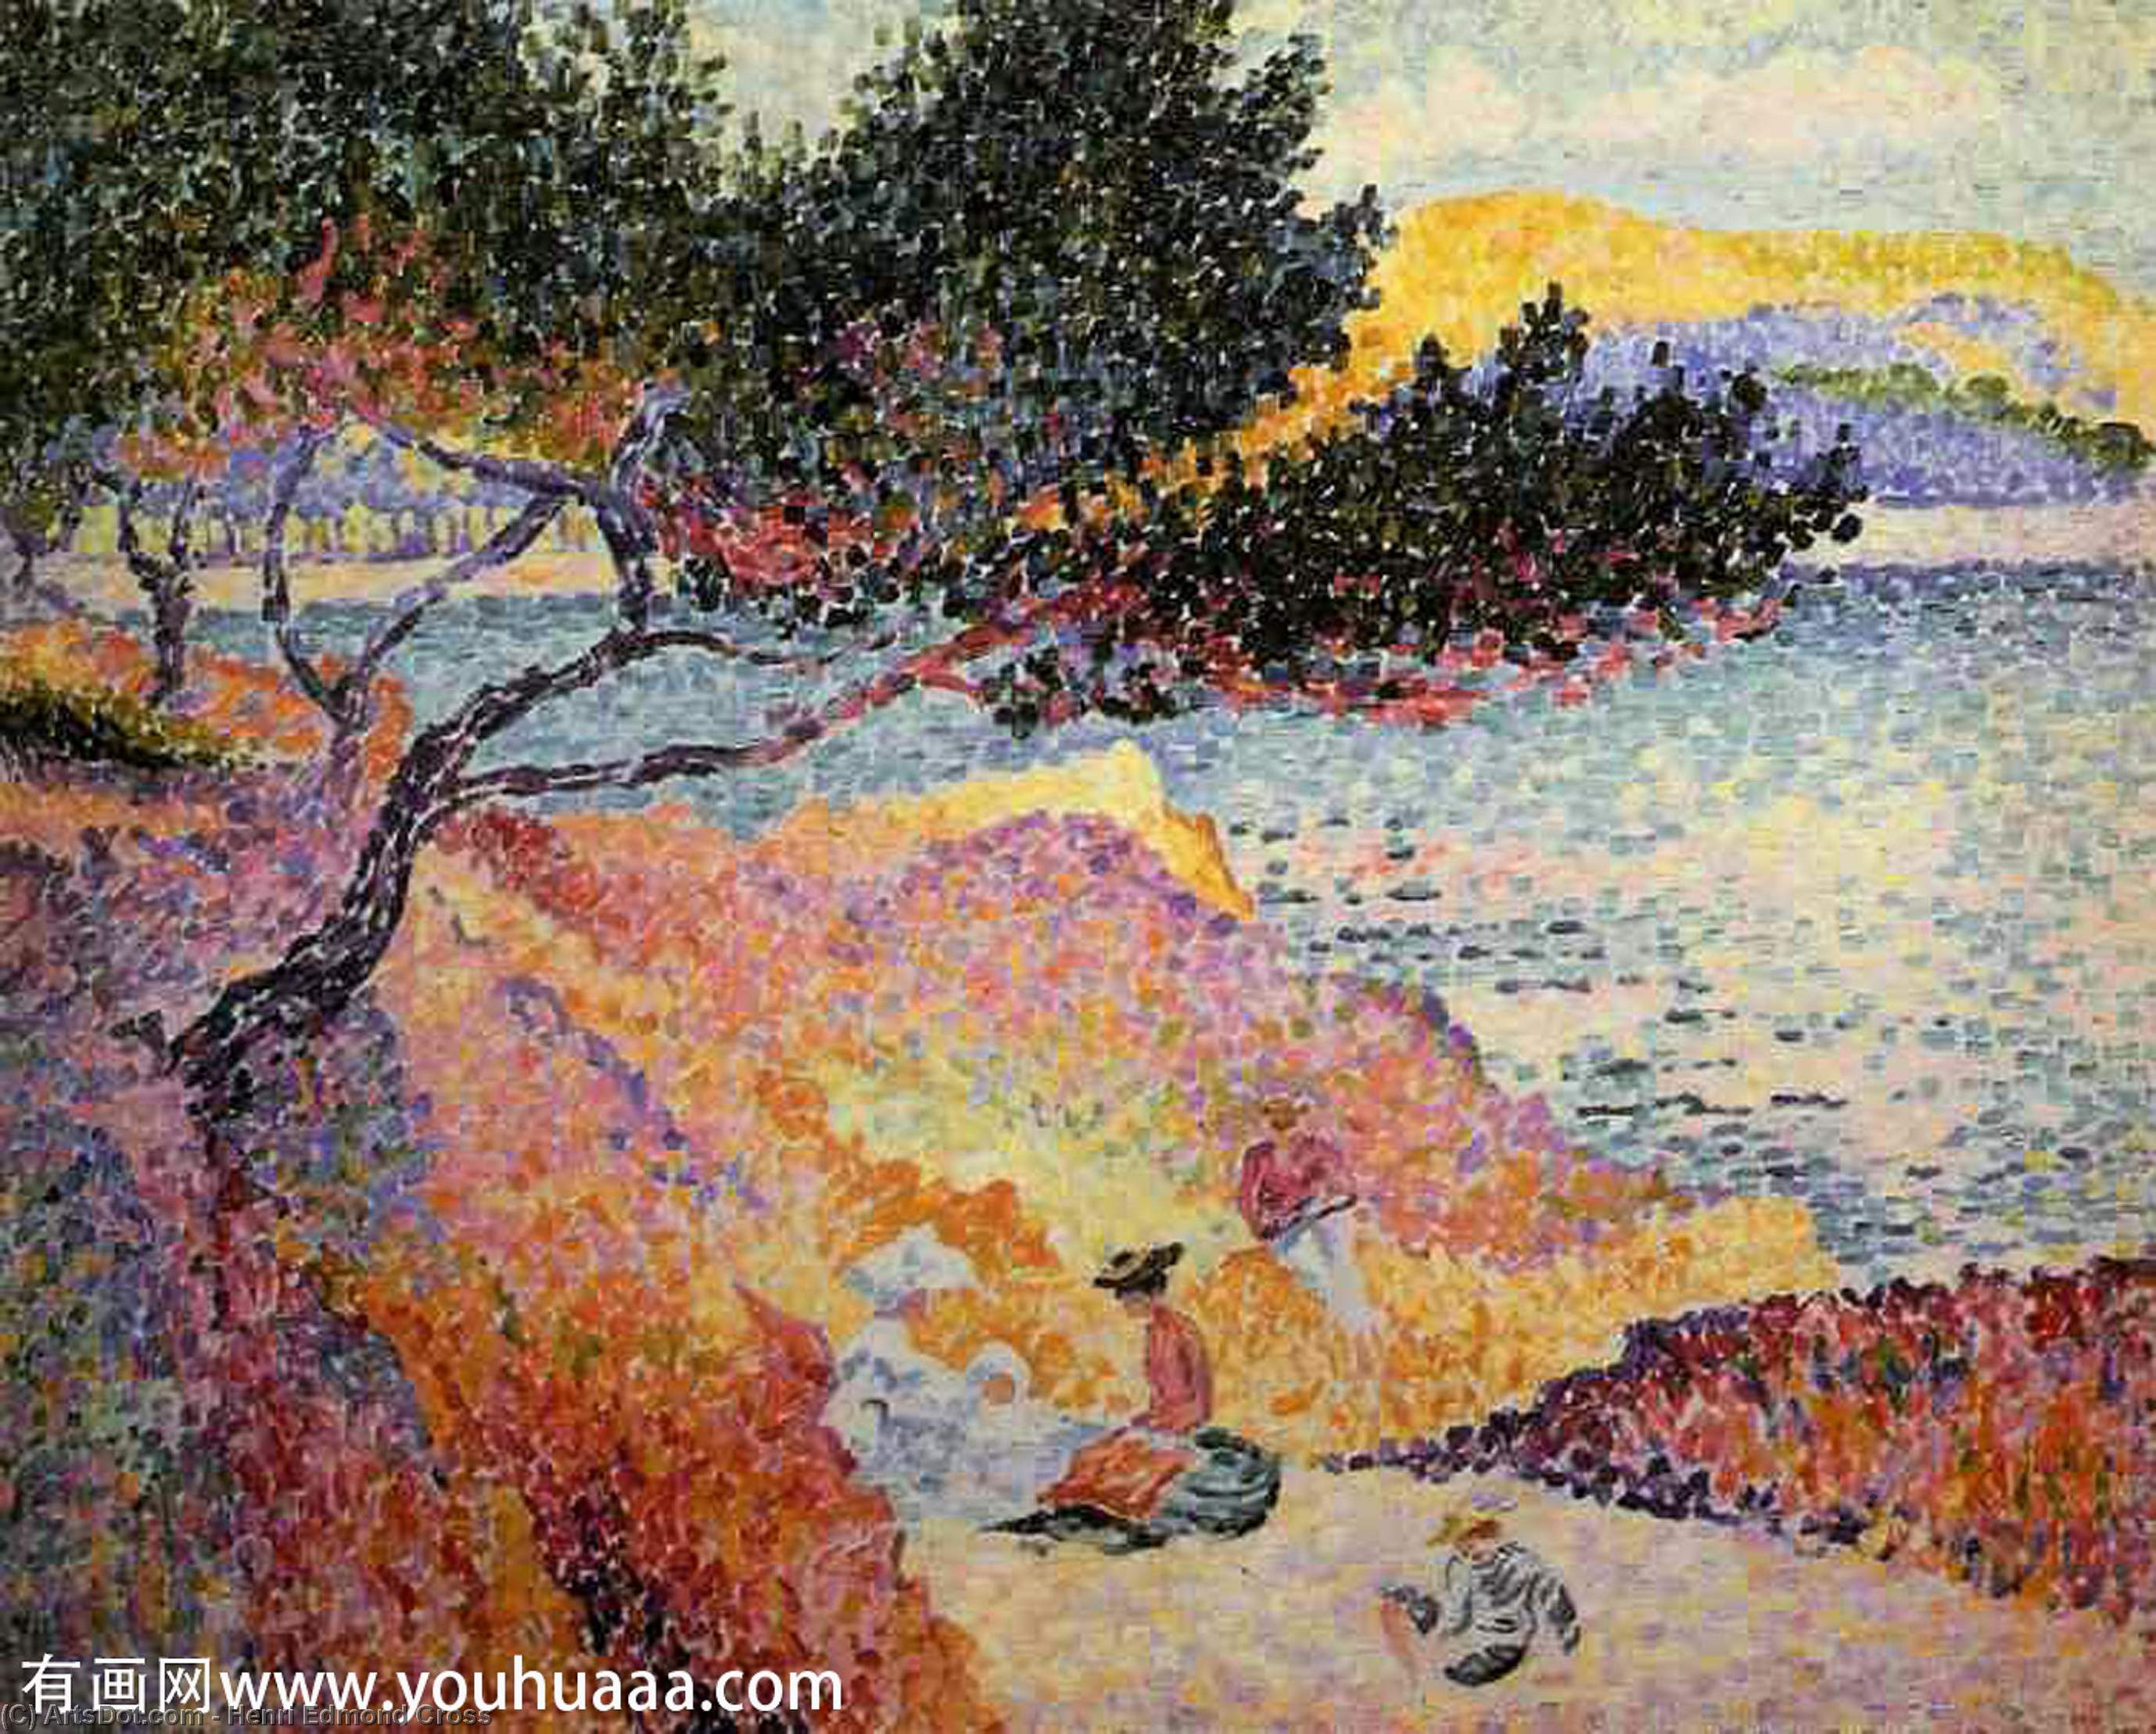 La baia di Cavaliere di Henri Edmond Cross (1856-1910, France)